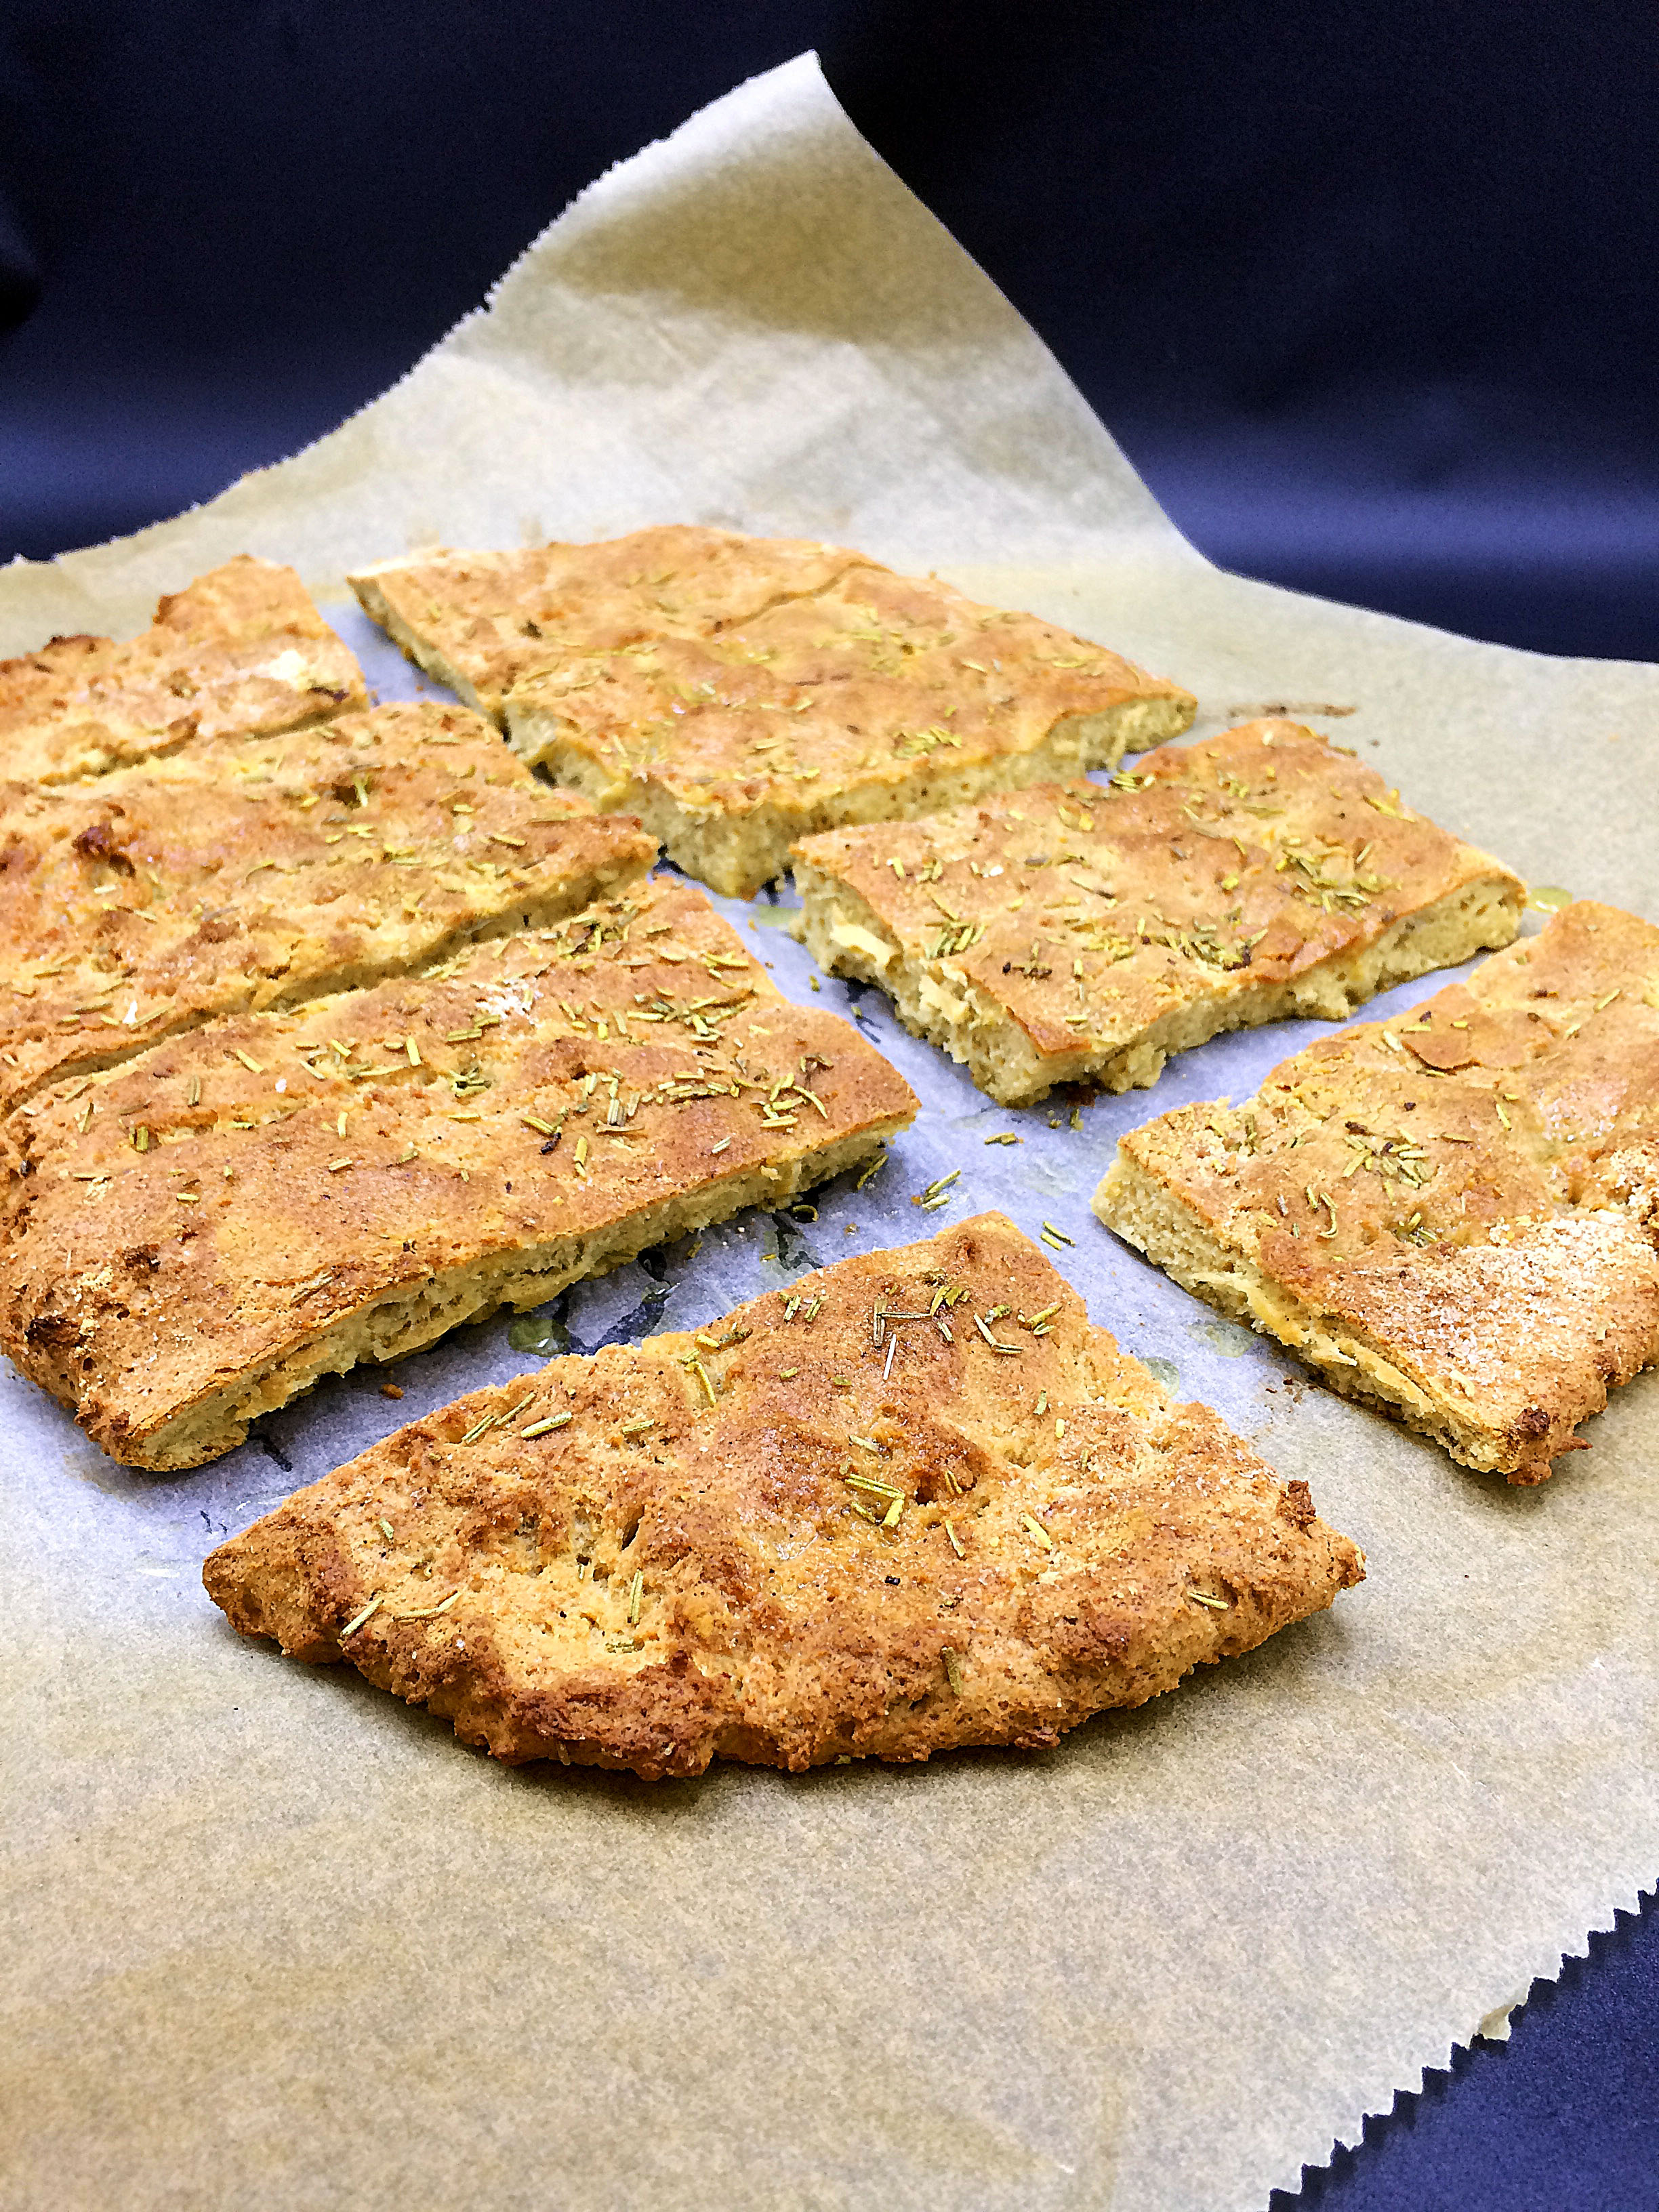 Secretly healthy Rosemary Flatbreat Focaccia-style {Low carb, high protein} / via kitchen-impossible.net #healthyfocaccia #lowcarbfoccia #lowcarbbread #lowcarbflatbreat #healthyflatbrad #lowcarbrecipe